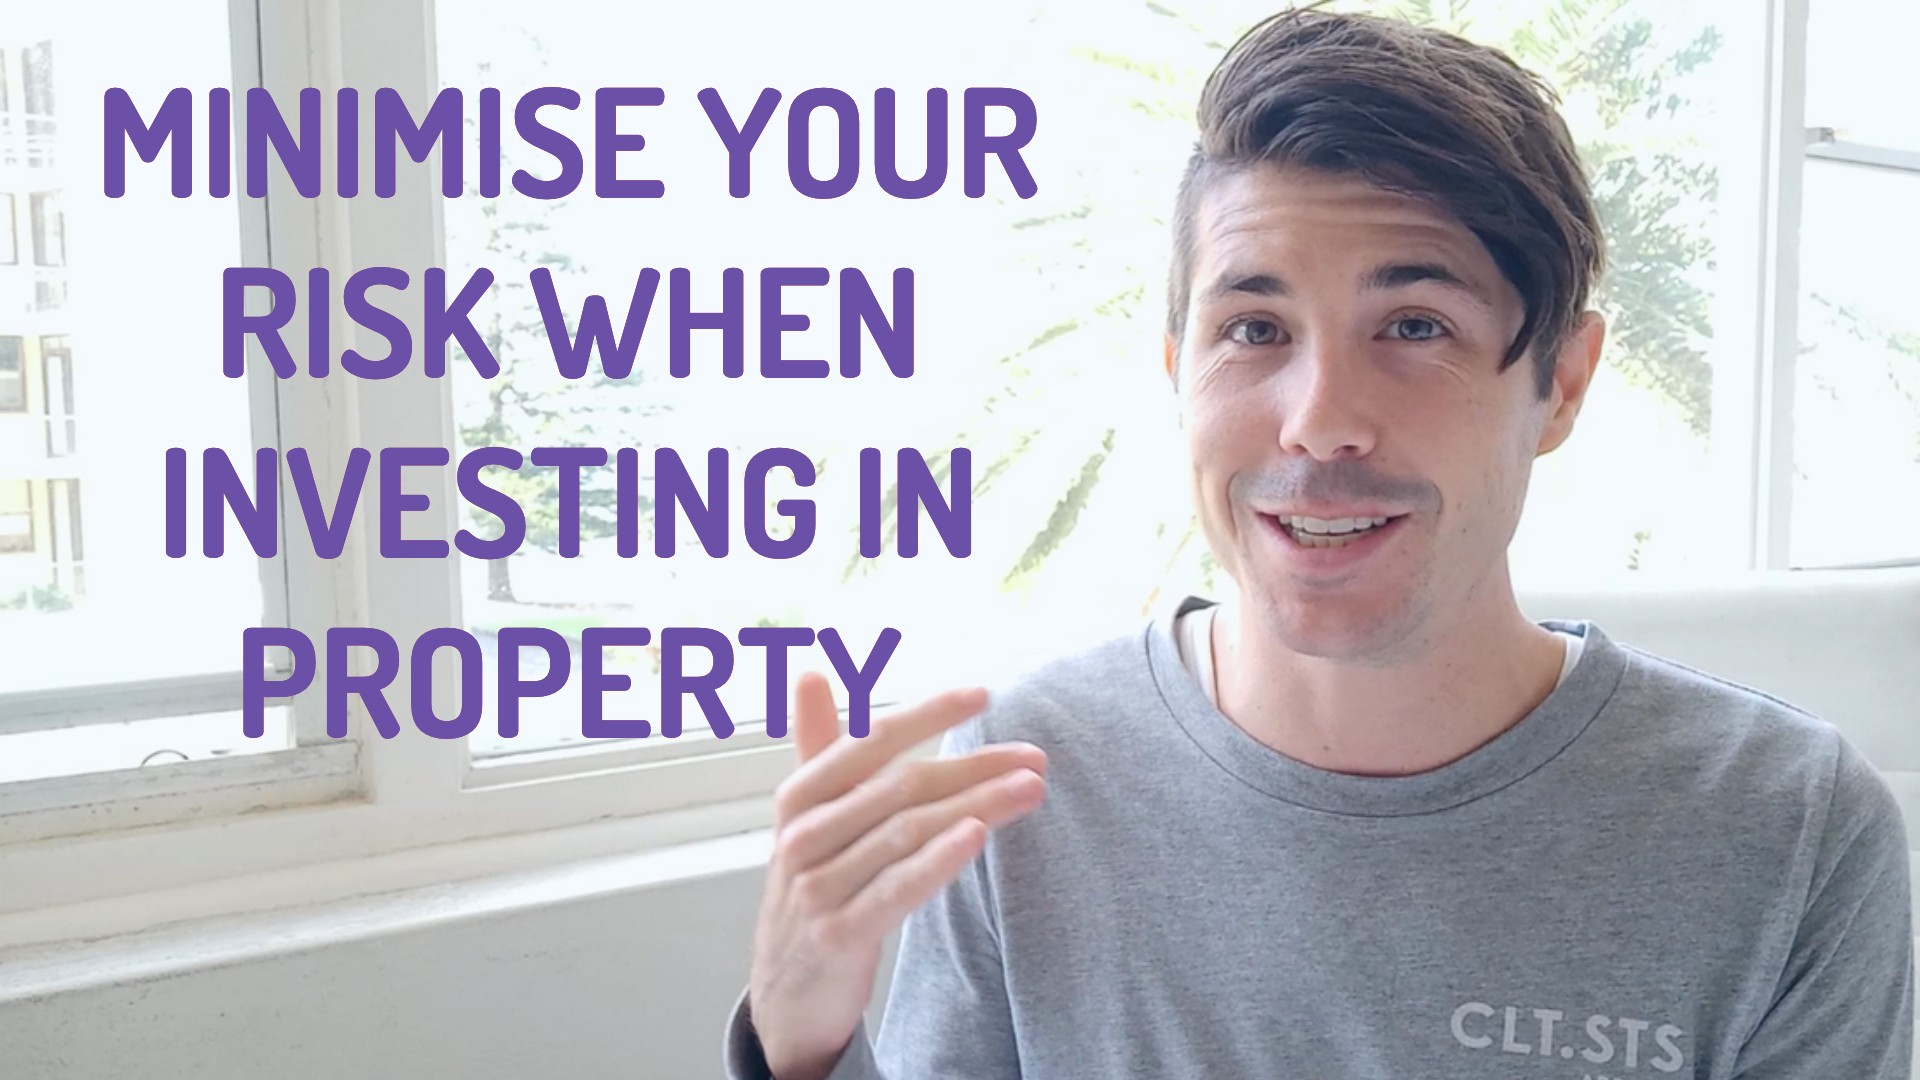 10 Ways To Minimise Your Risk When Property Investing